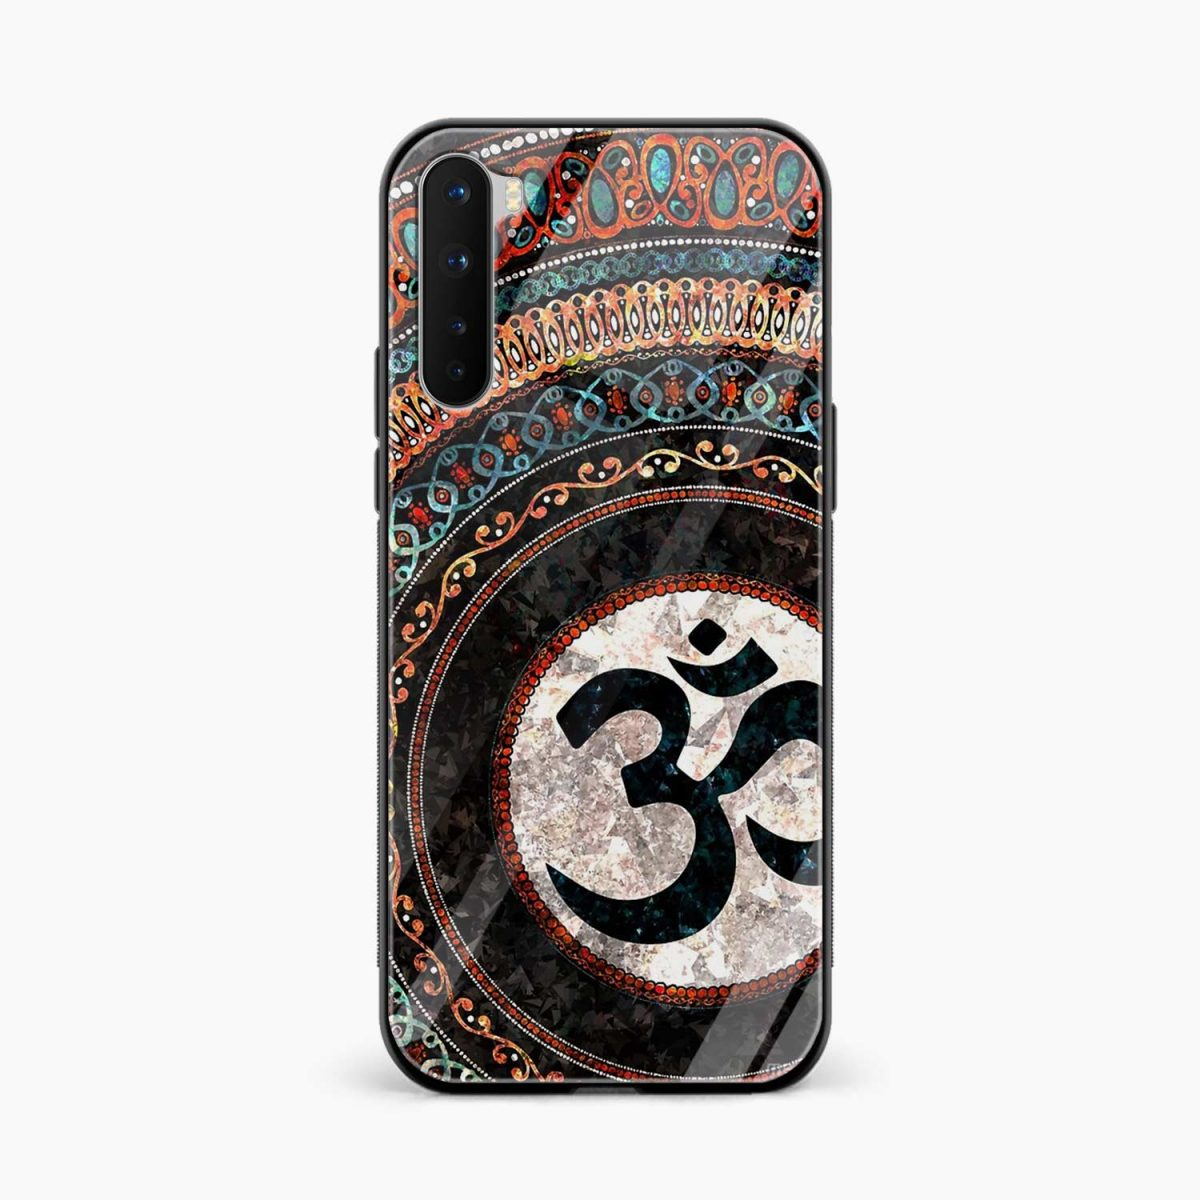 om glass front view oneplus nord back cover